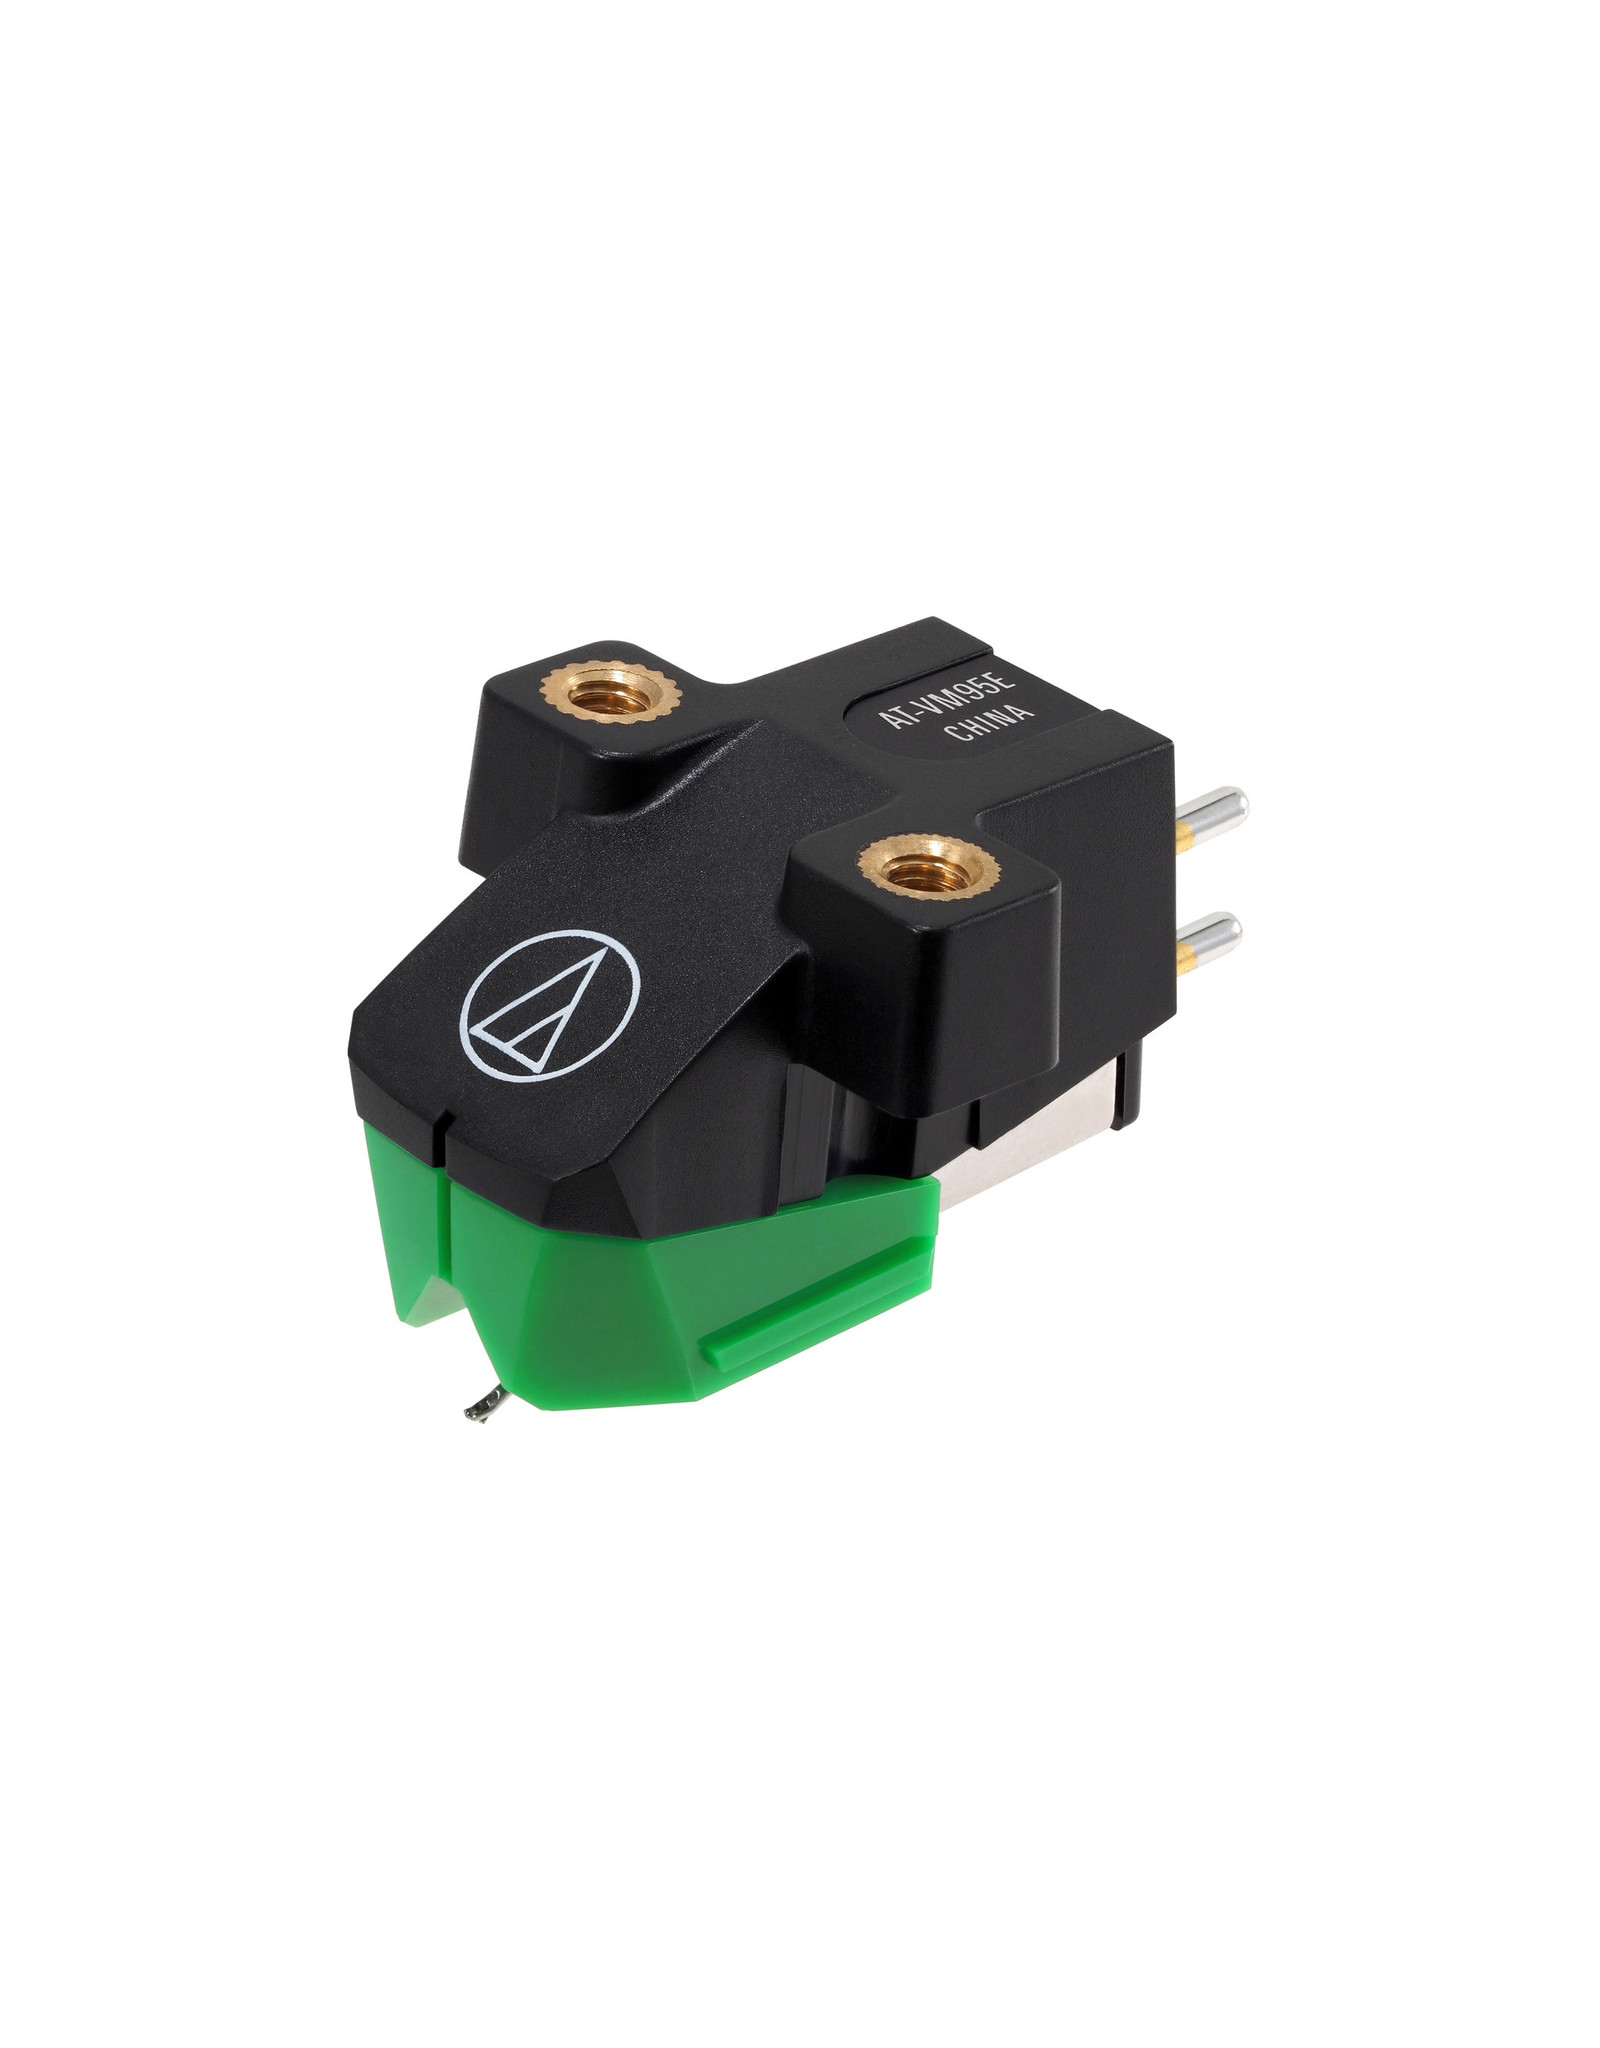 Audio-Technica Audio-Technica AT-VM95E Phono Cartridge